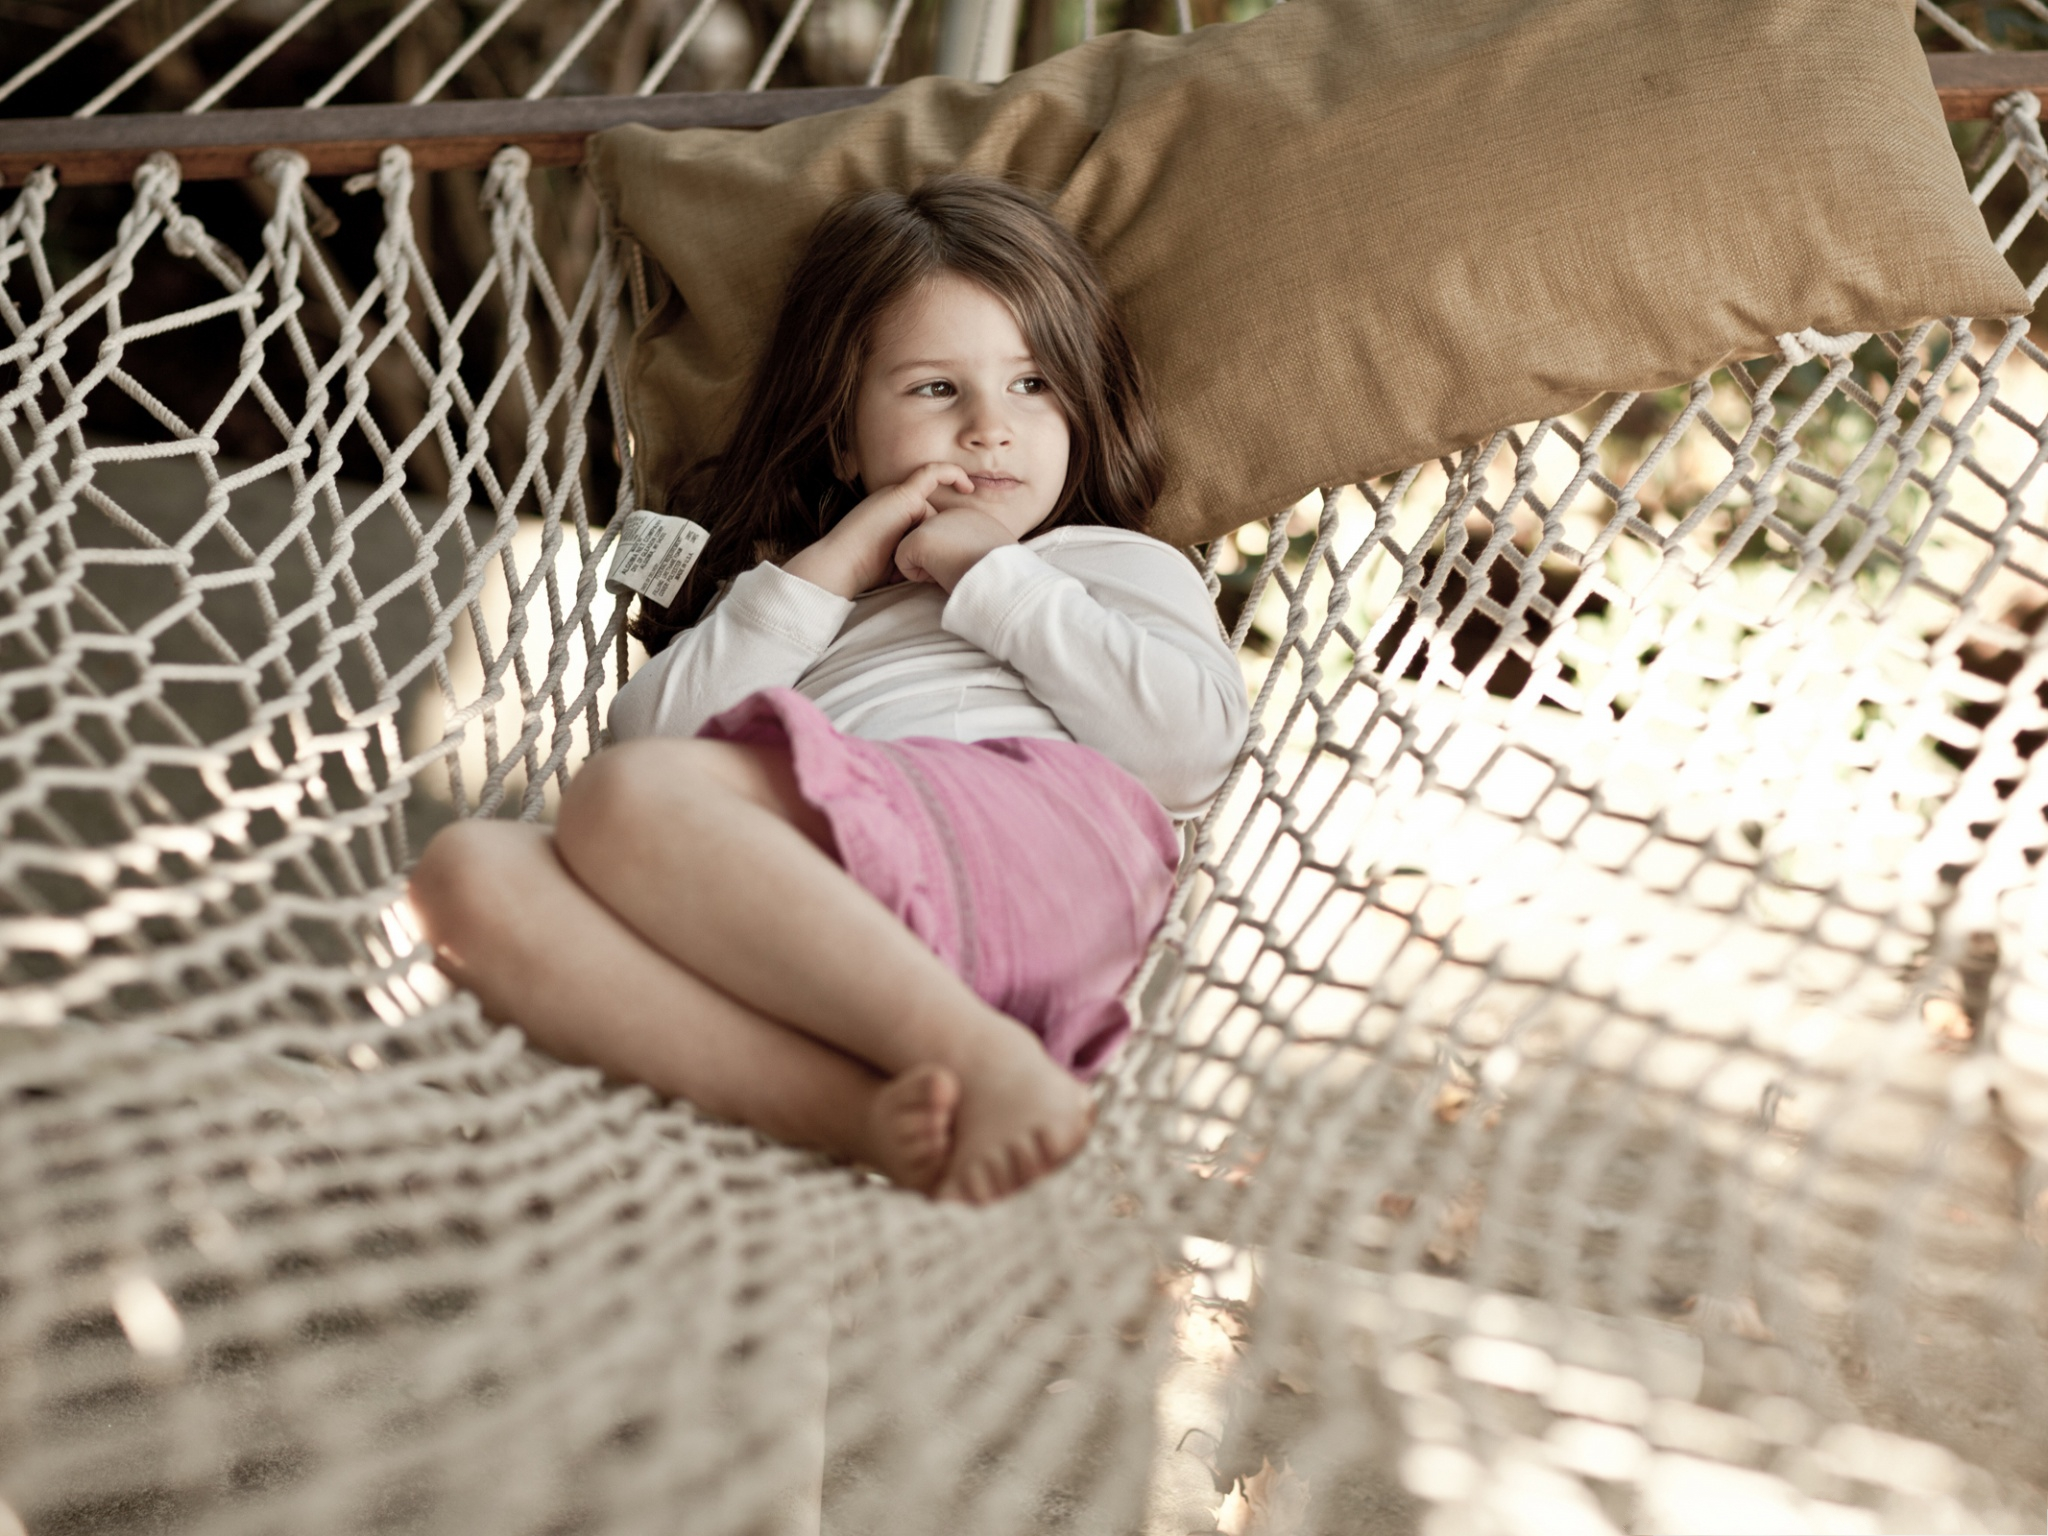 click to free download the wallpaper--Little Girl Picture, Baby Girl Lying on Hammock, Comfortable Look 2048X1536 free wallpaper download